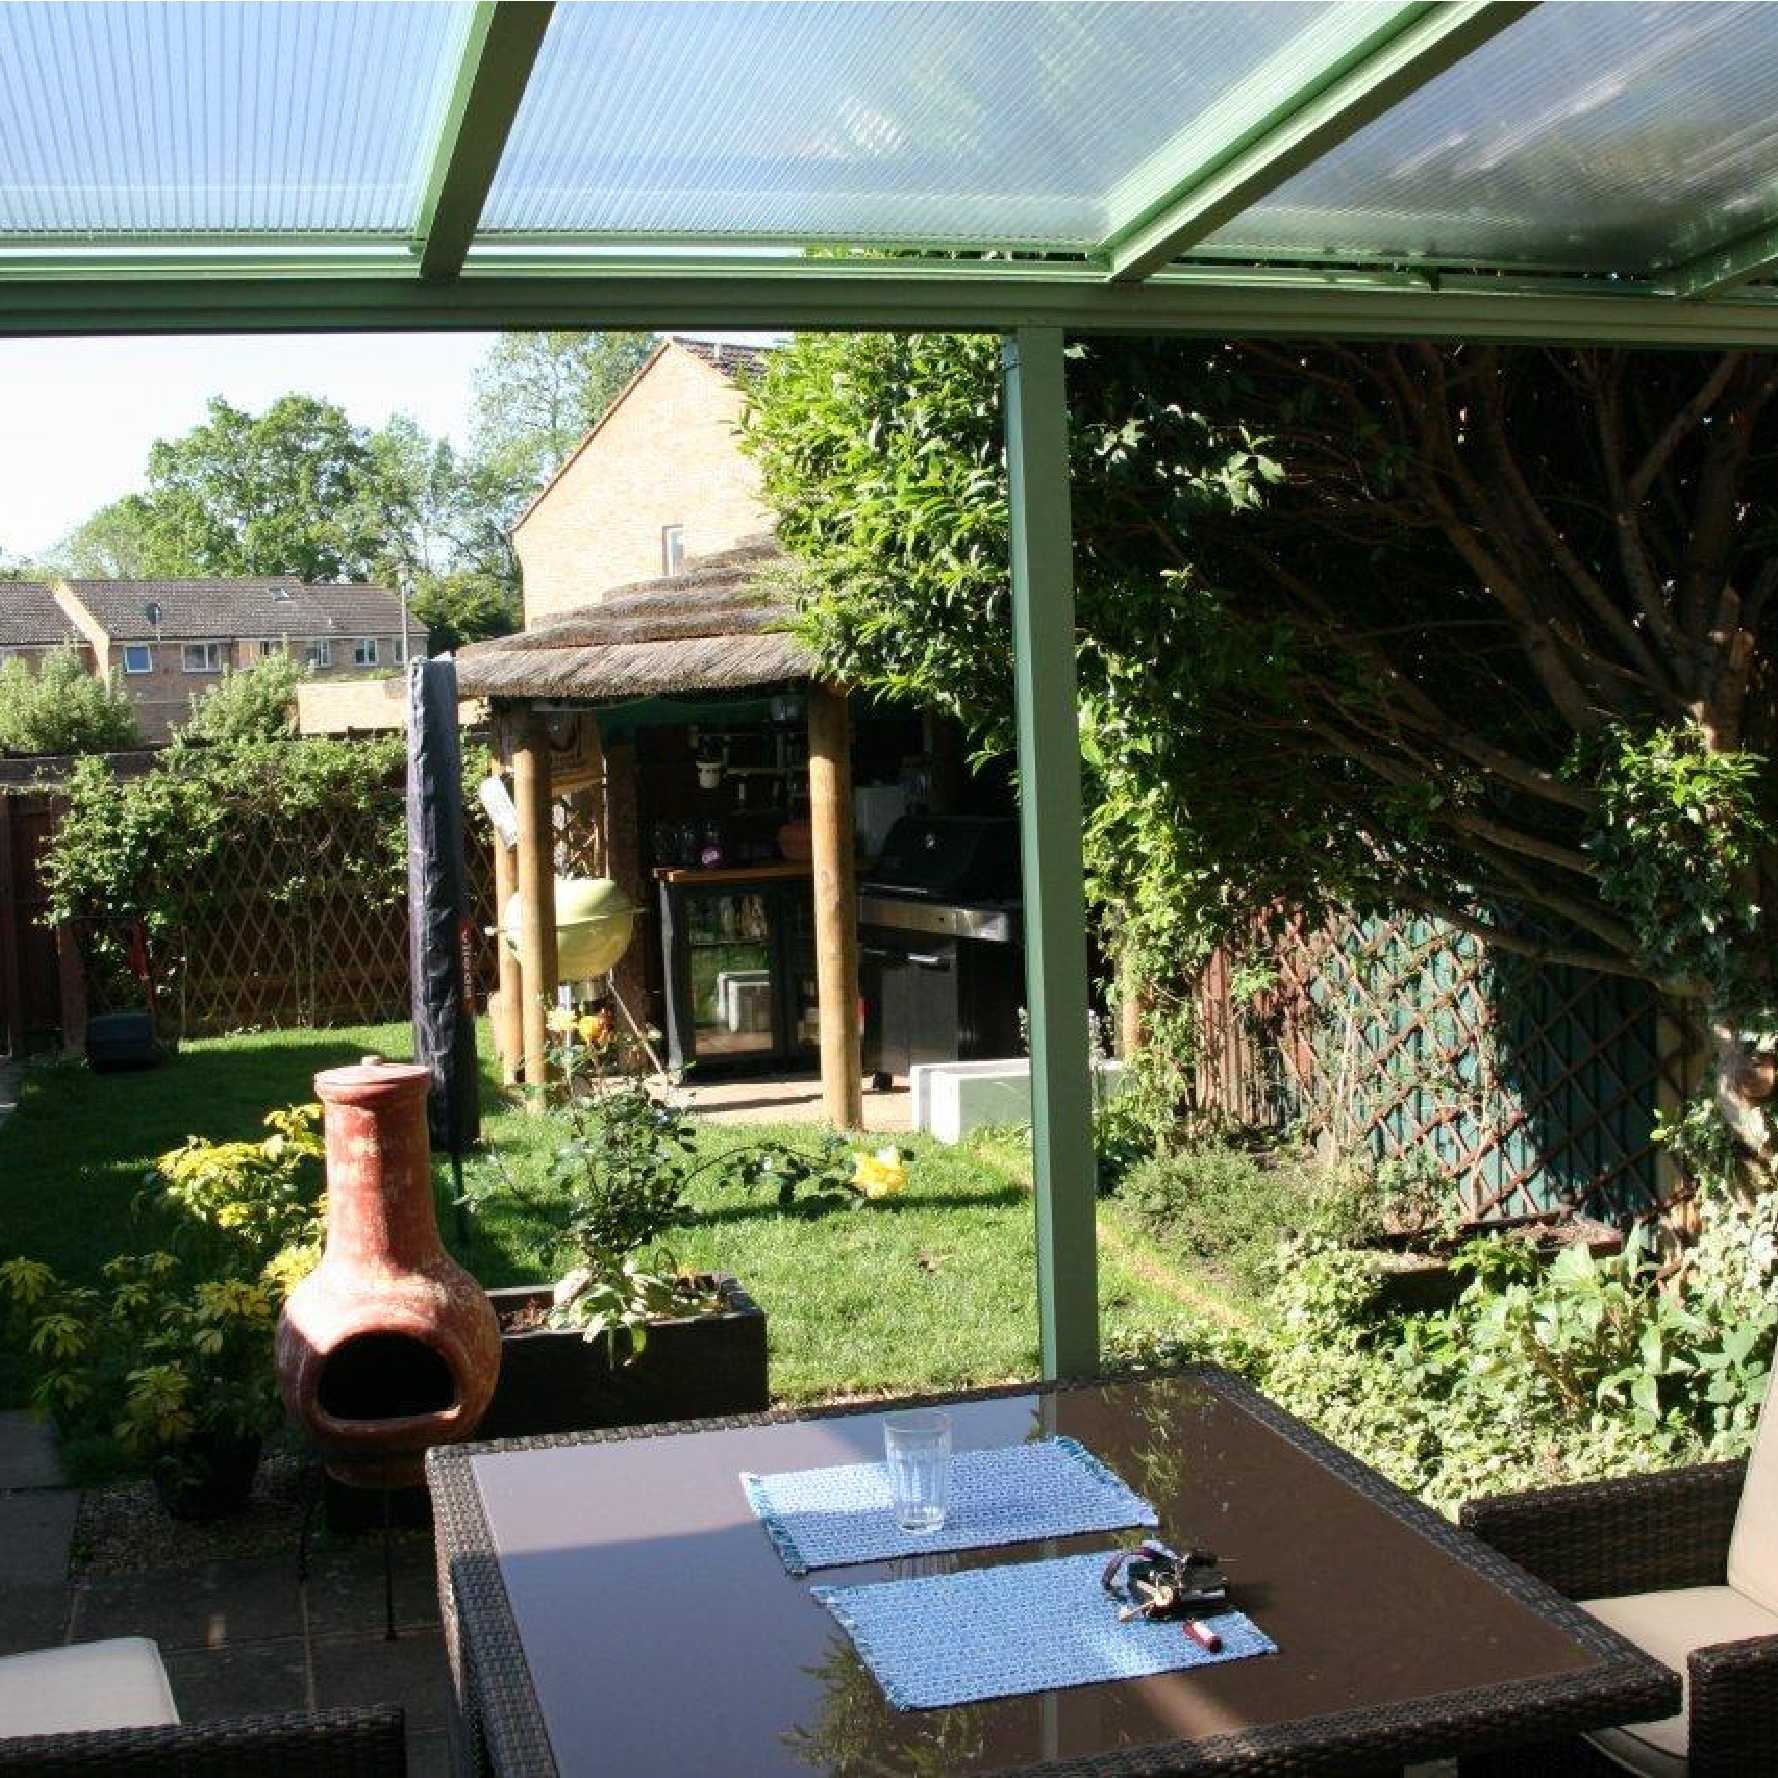 Affordable Omega Smart White Lean-To Canopy with 16mm Polycarbonate Glazing - 11.4m (W) x 3.5m (P), (5) Supporting Posts